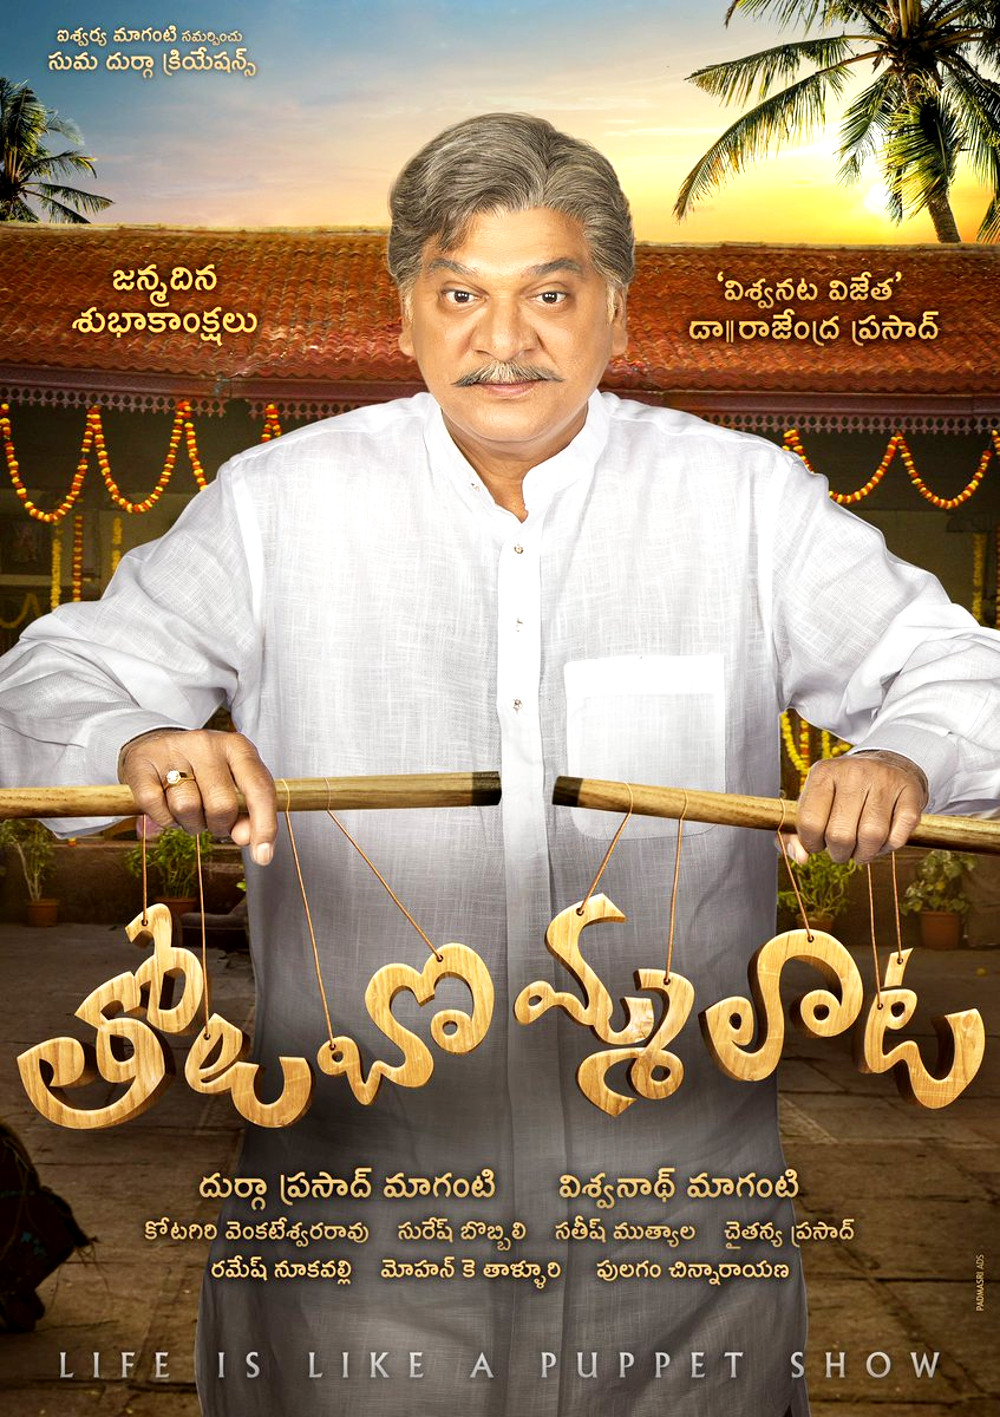 Tholubommalata Movie First Look out on Actor Dr. Rajendra Prasad's Birthday!